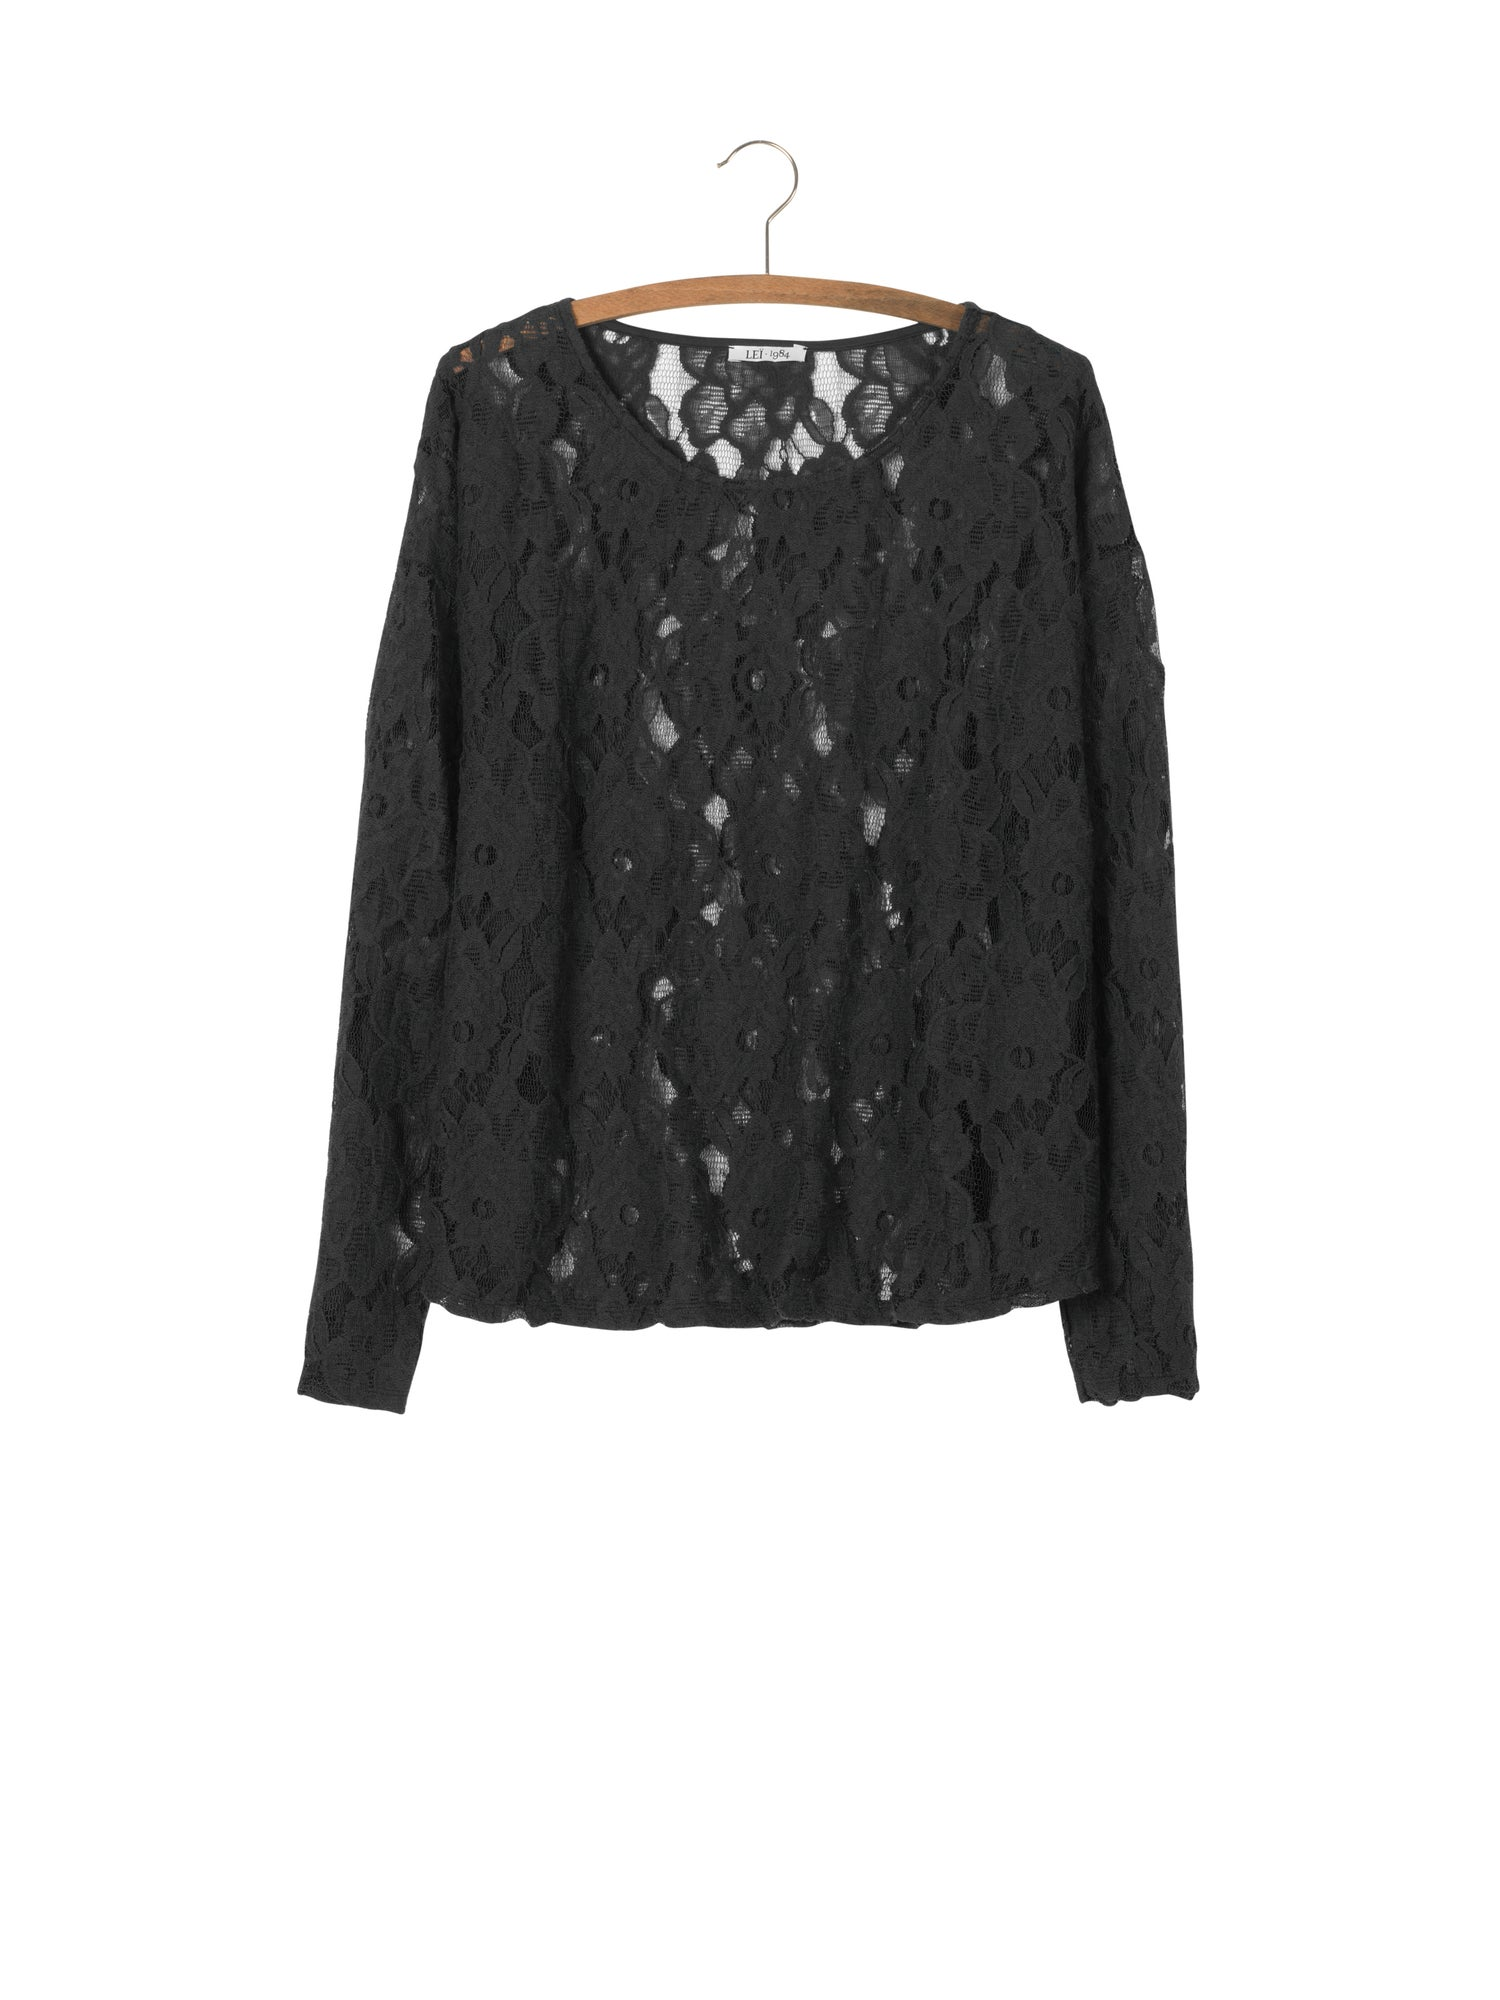 Image of Top ALDA 120€ -60%